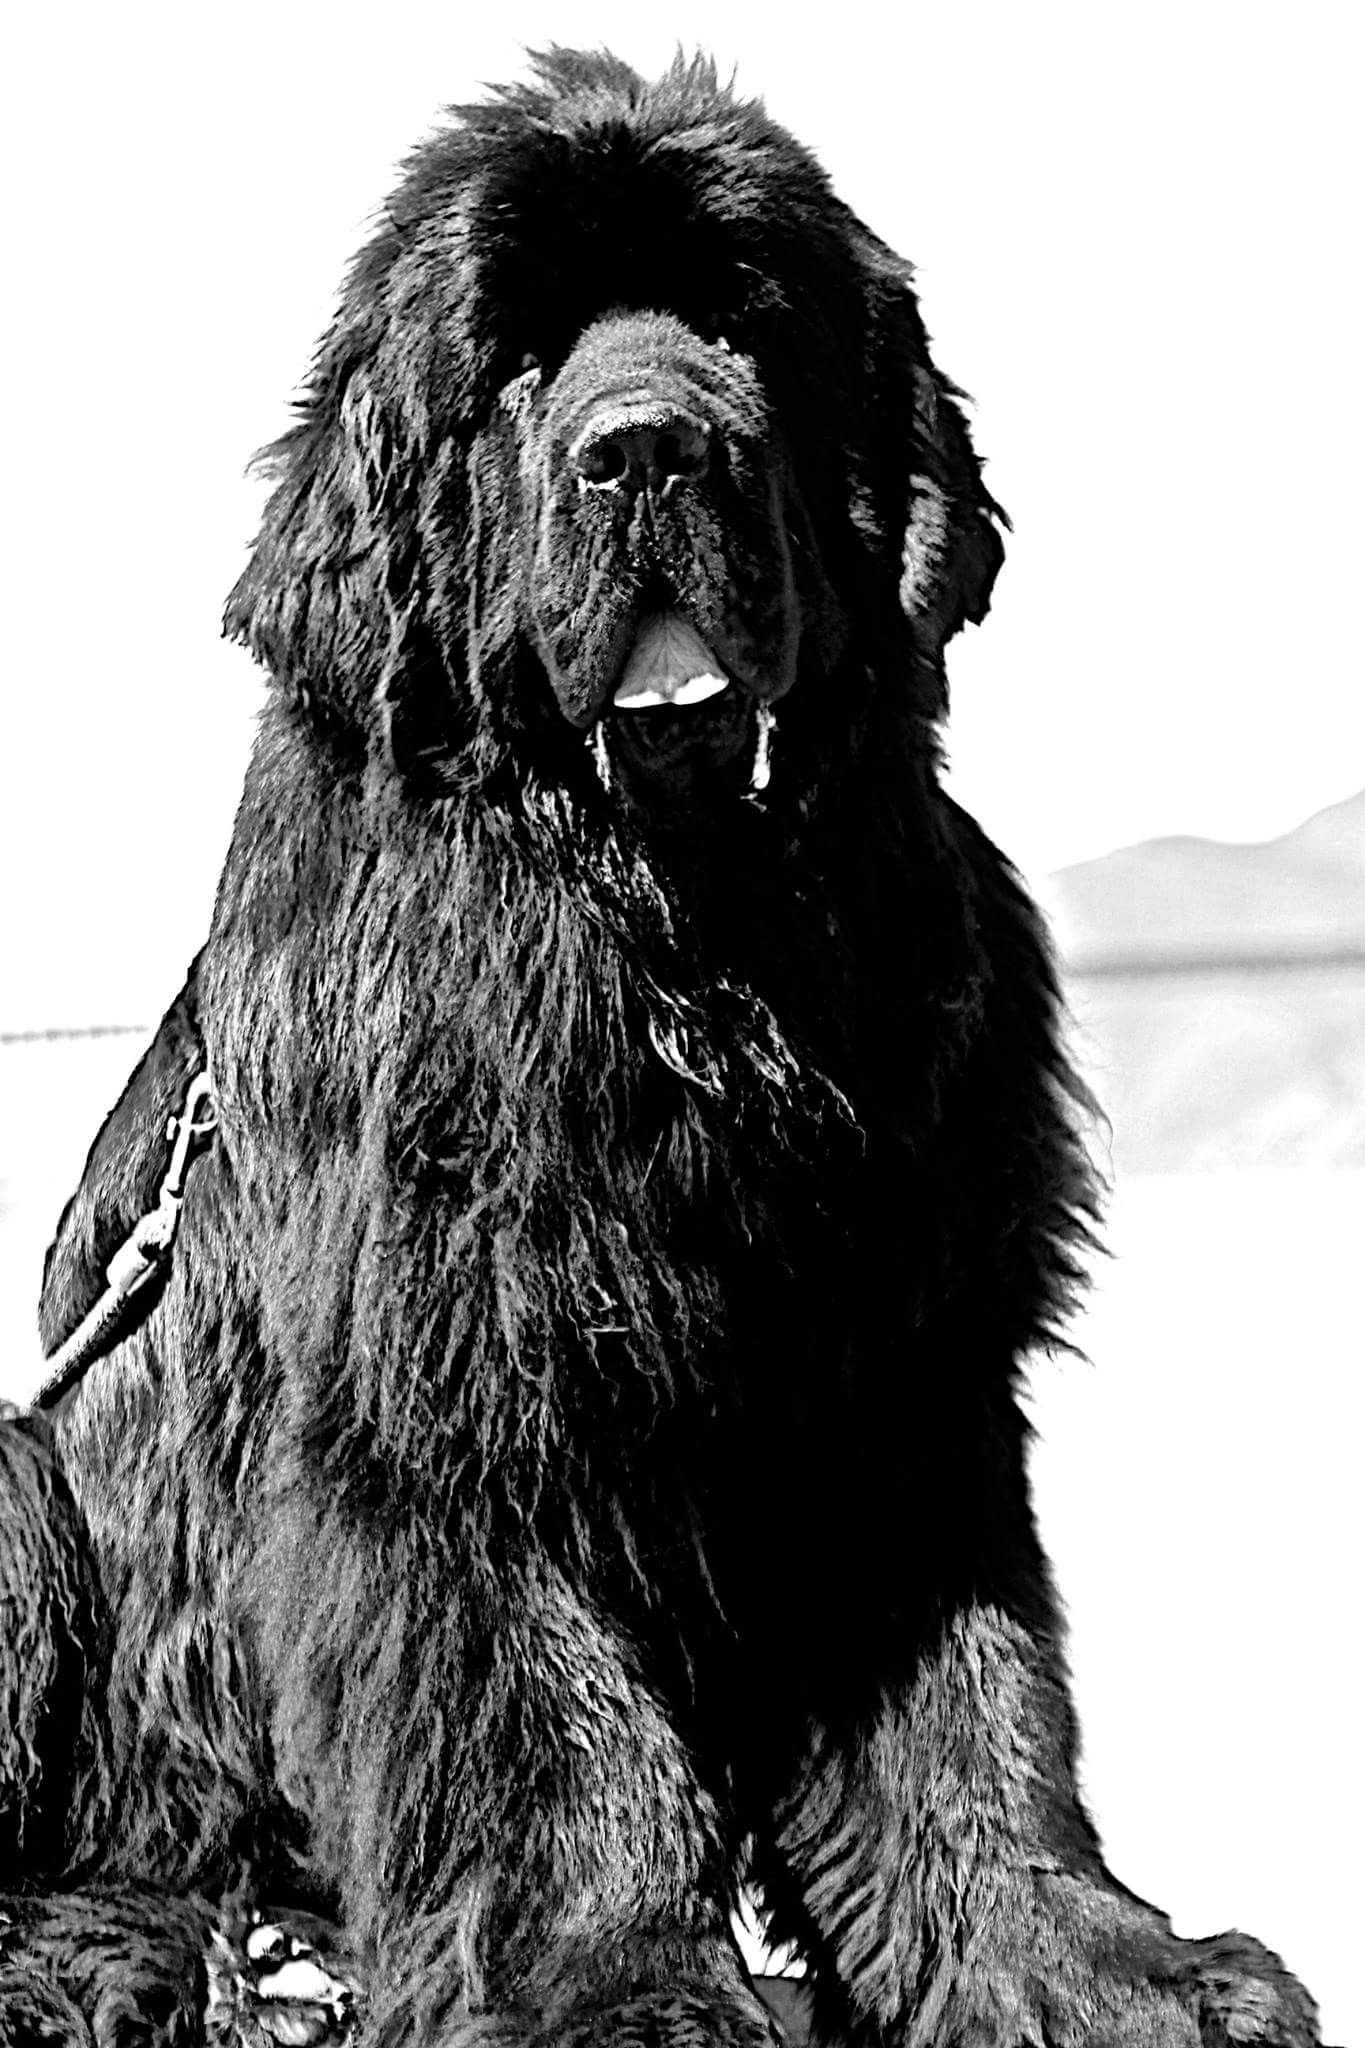 Pin By Stephen Sayad On My Newfies Newfoundland Dog Giant